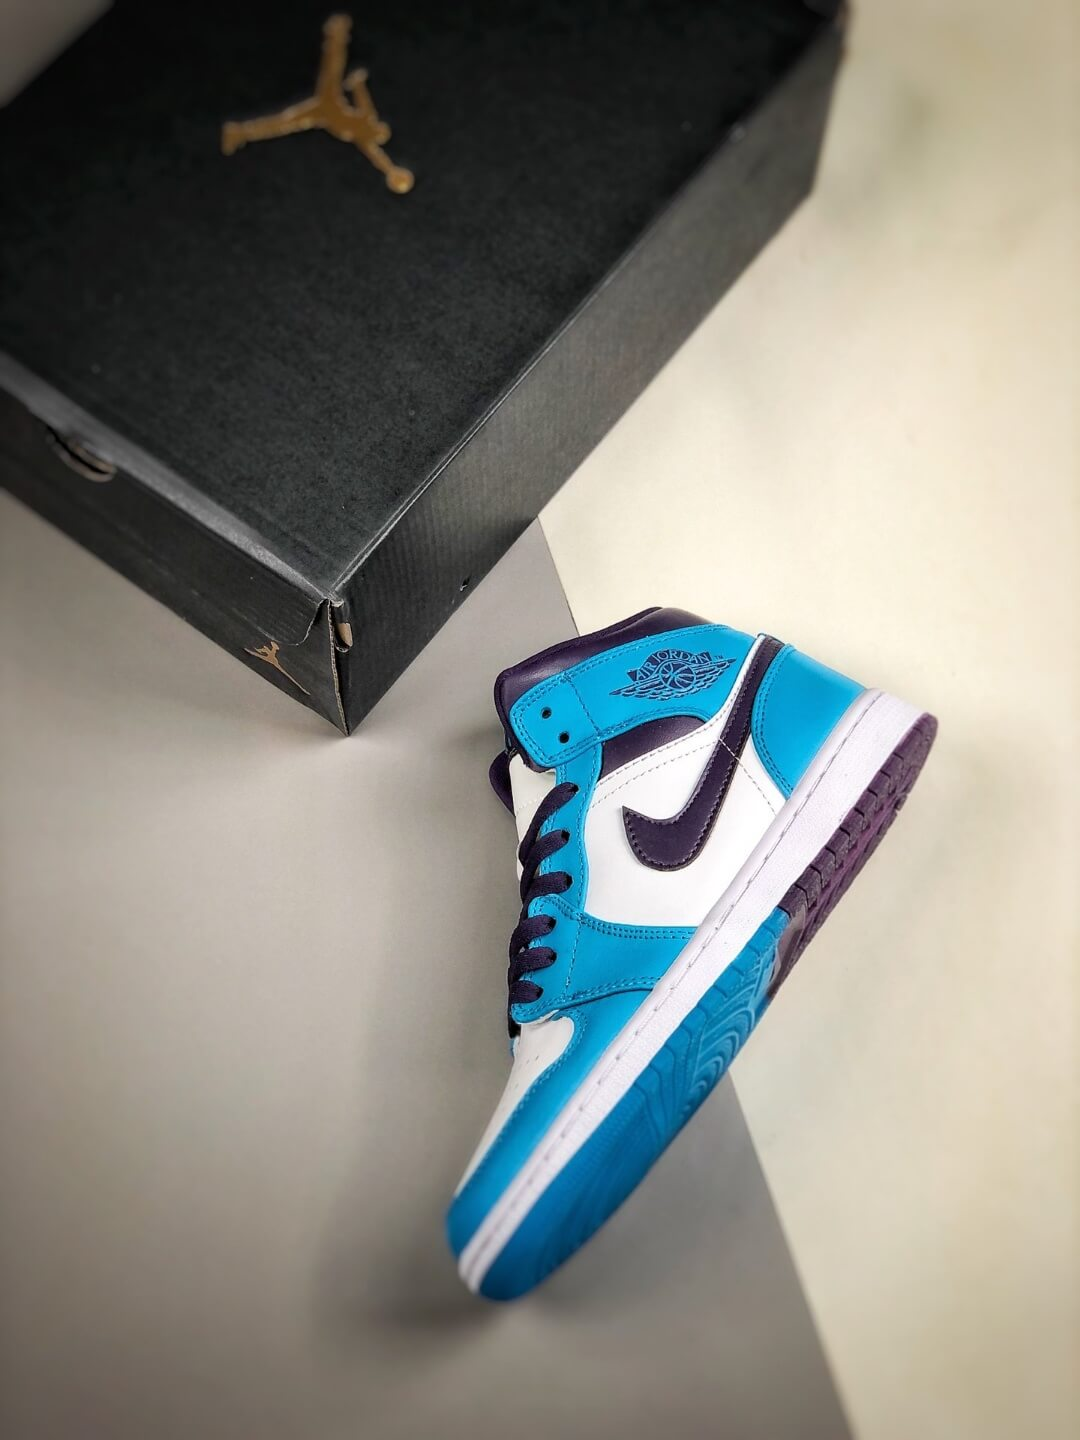 The Air Jordan 1 Mid Hornets Blue Lagoon and Grand Purple Leather Upper Jordan Wings Logo Repsneakers 09